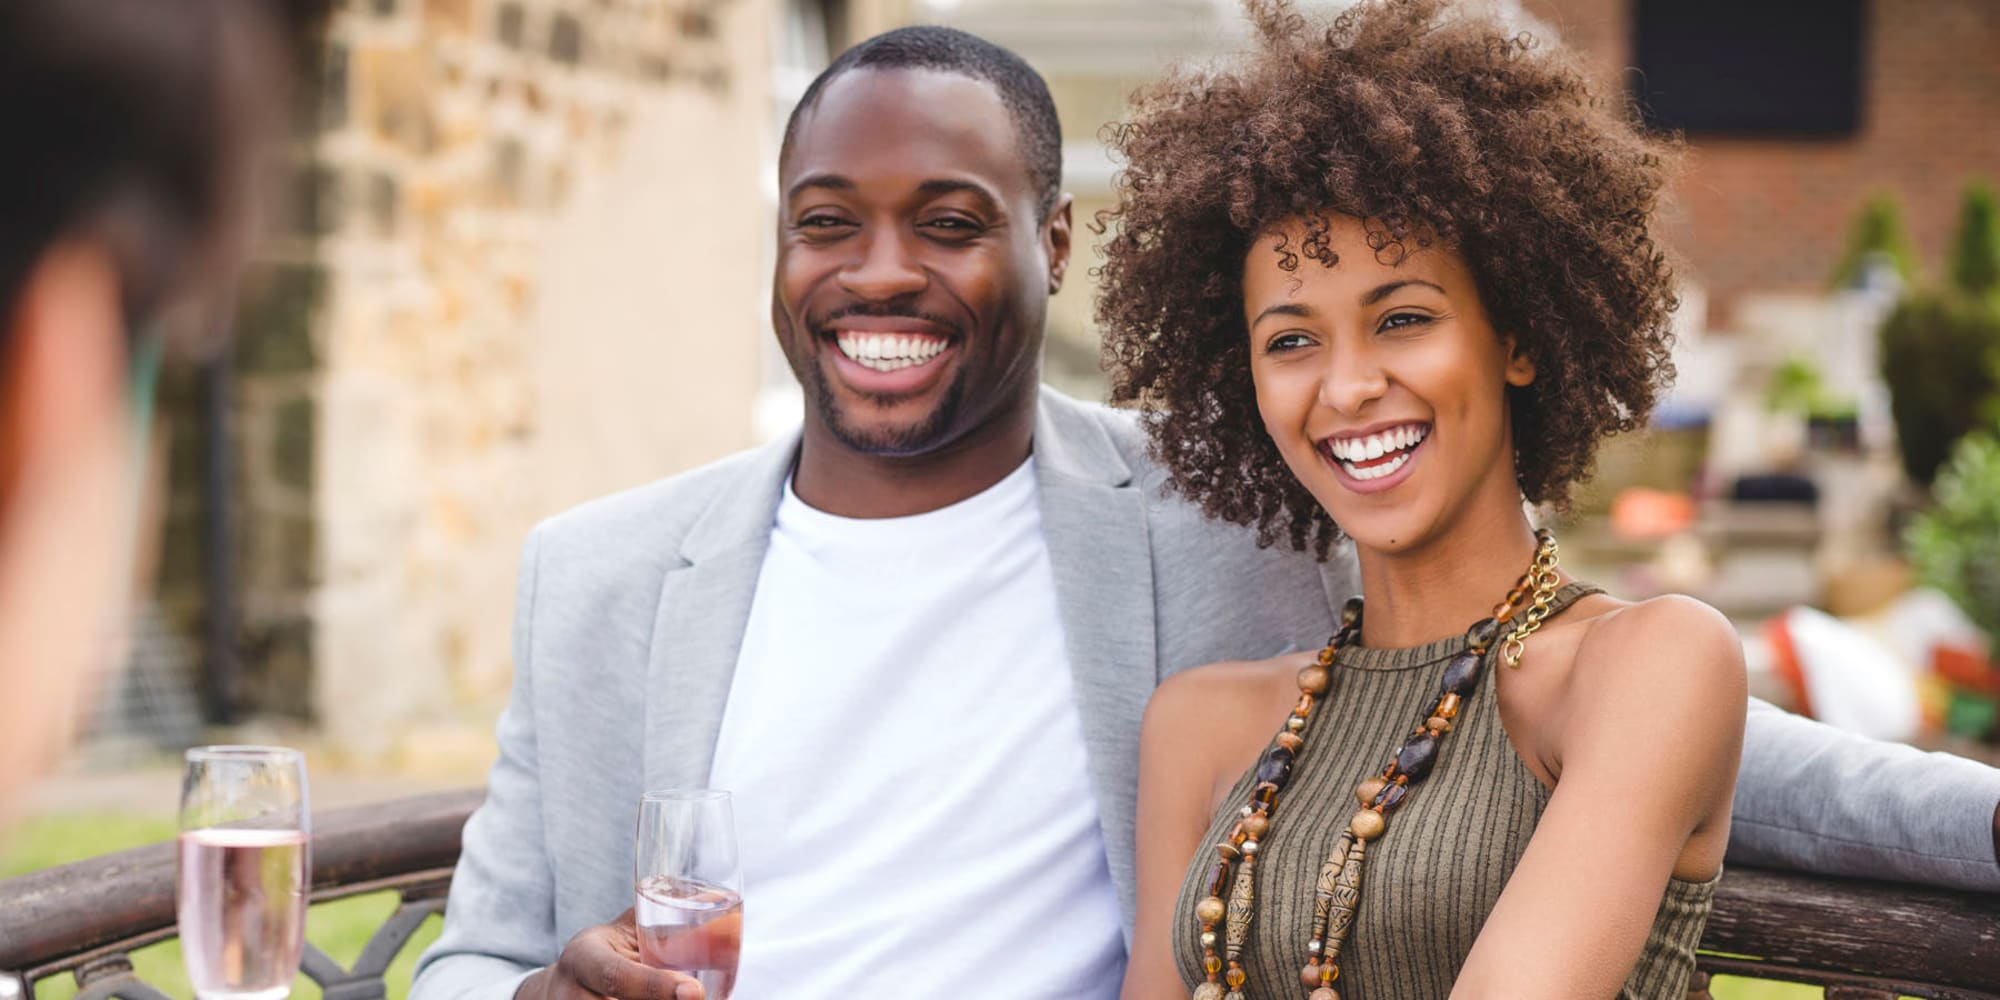 Resident couple enjoying champagne and meeting new people at an outdoor event near L'Estancia in Studio City, California